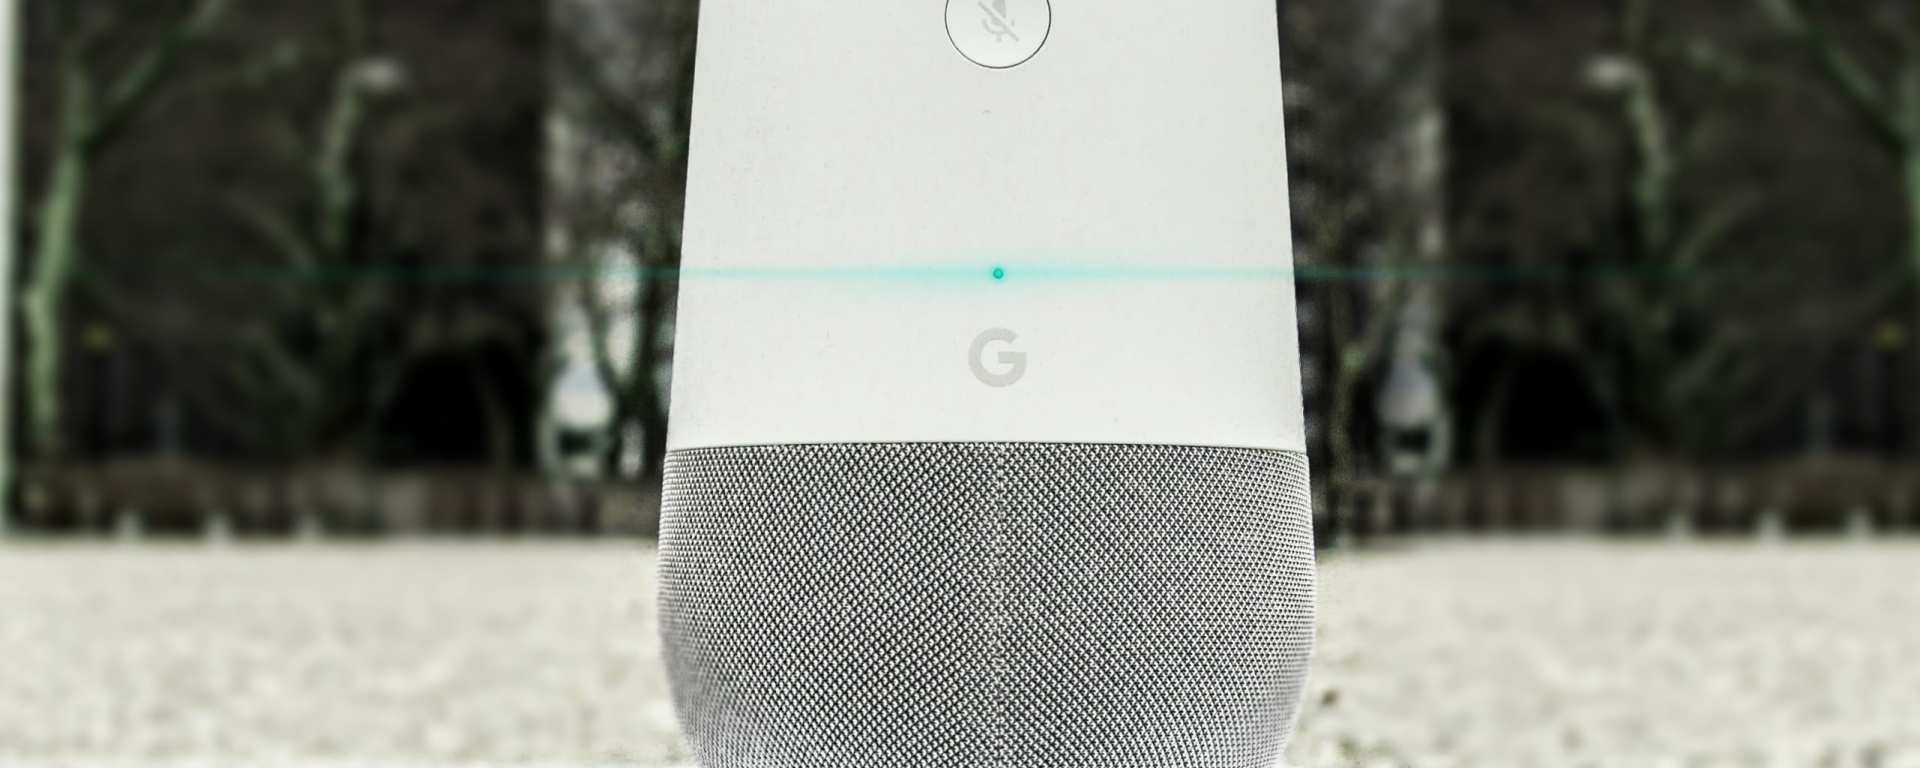 Google Home Unboxing